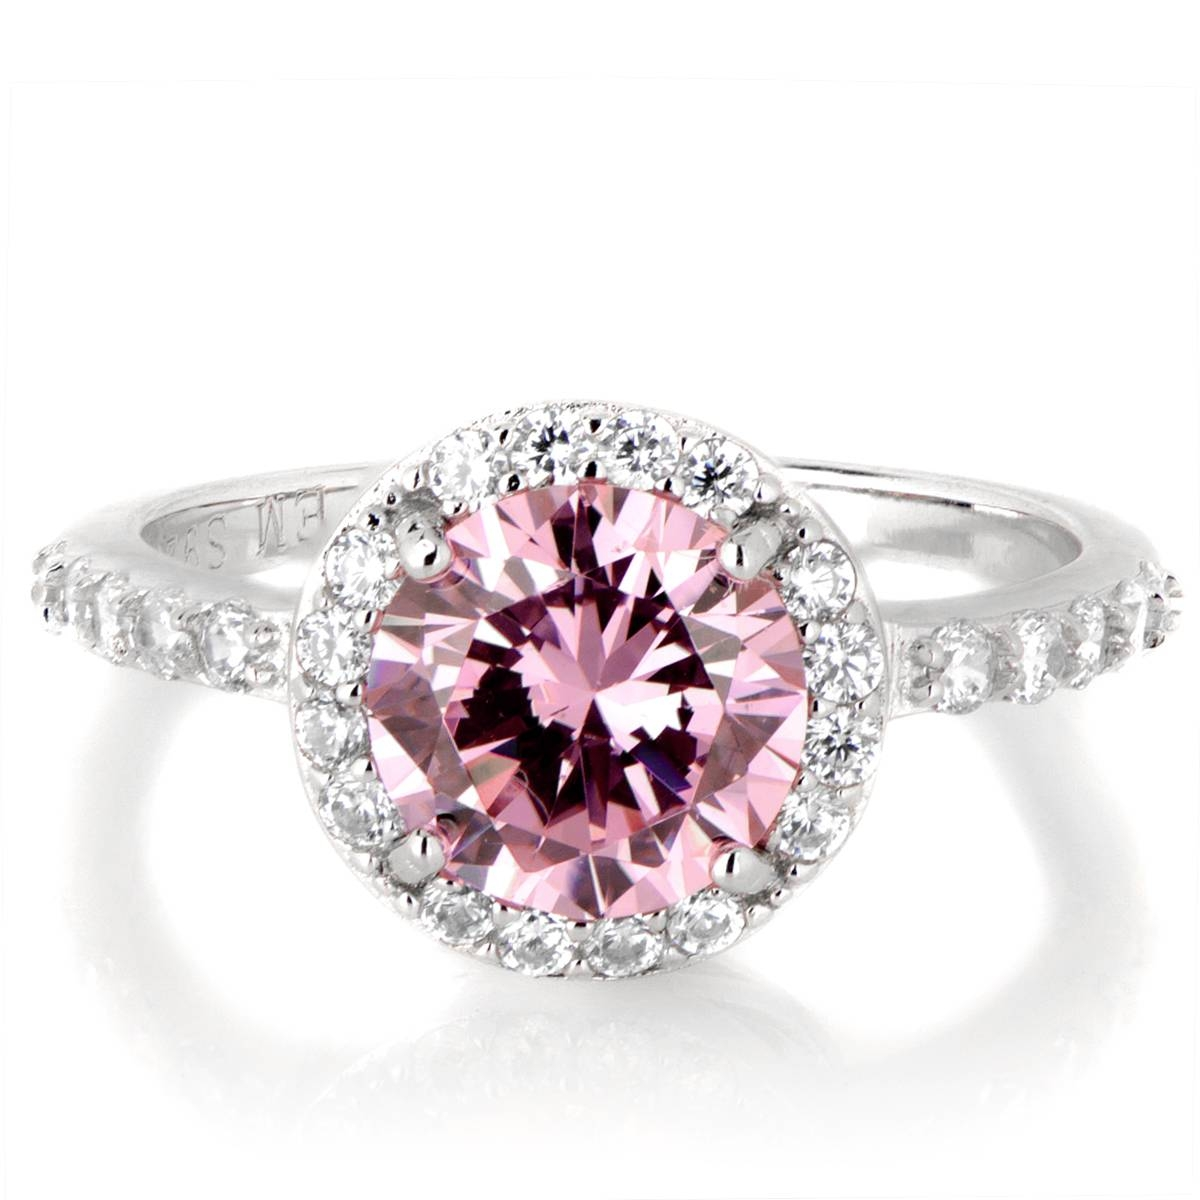 Silvertone October Imitation Birthstone Ring – Pink Cz Within October Birthstone Engagement Rings (View 8 of 15)